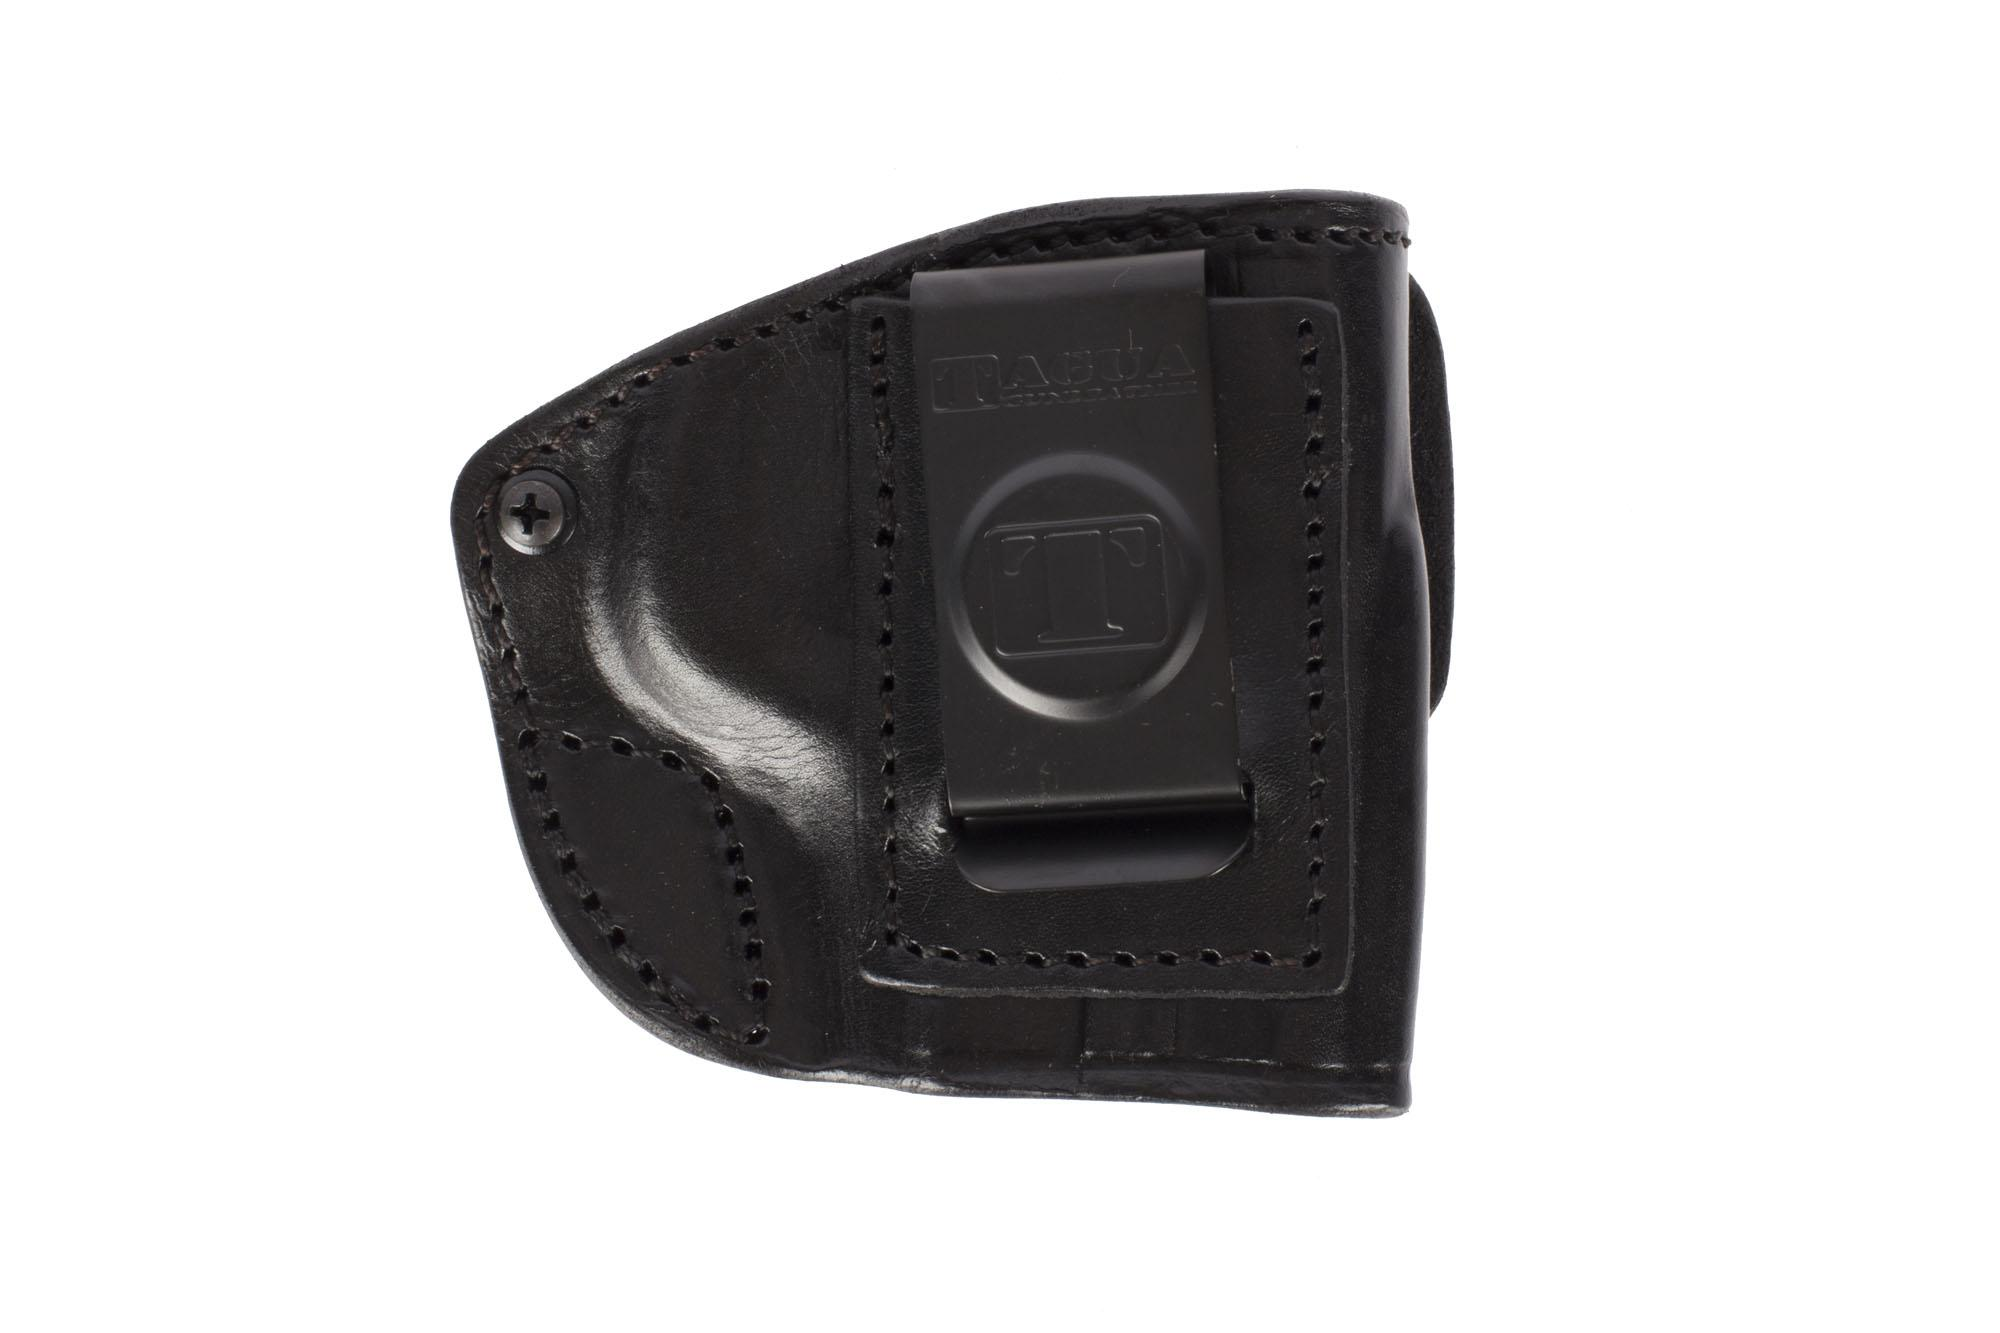 Tagua 4-in-1 IWB Holster - Right Hand - Smith & Wesson M&P Shield - Black